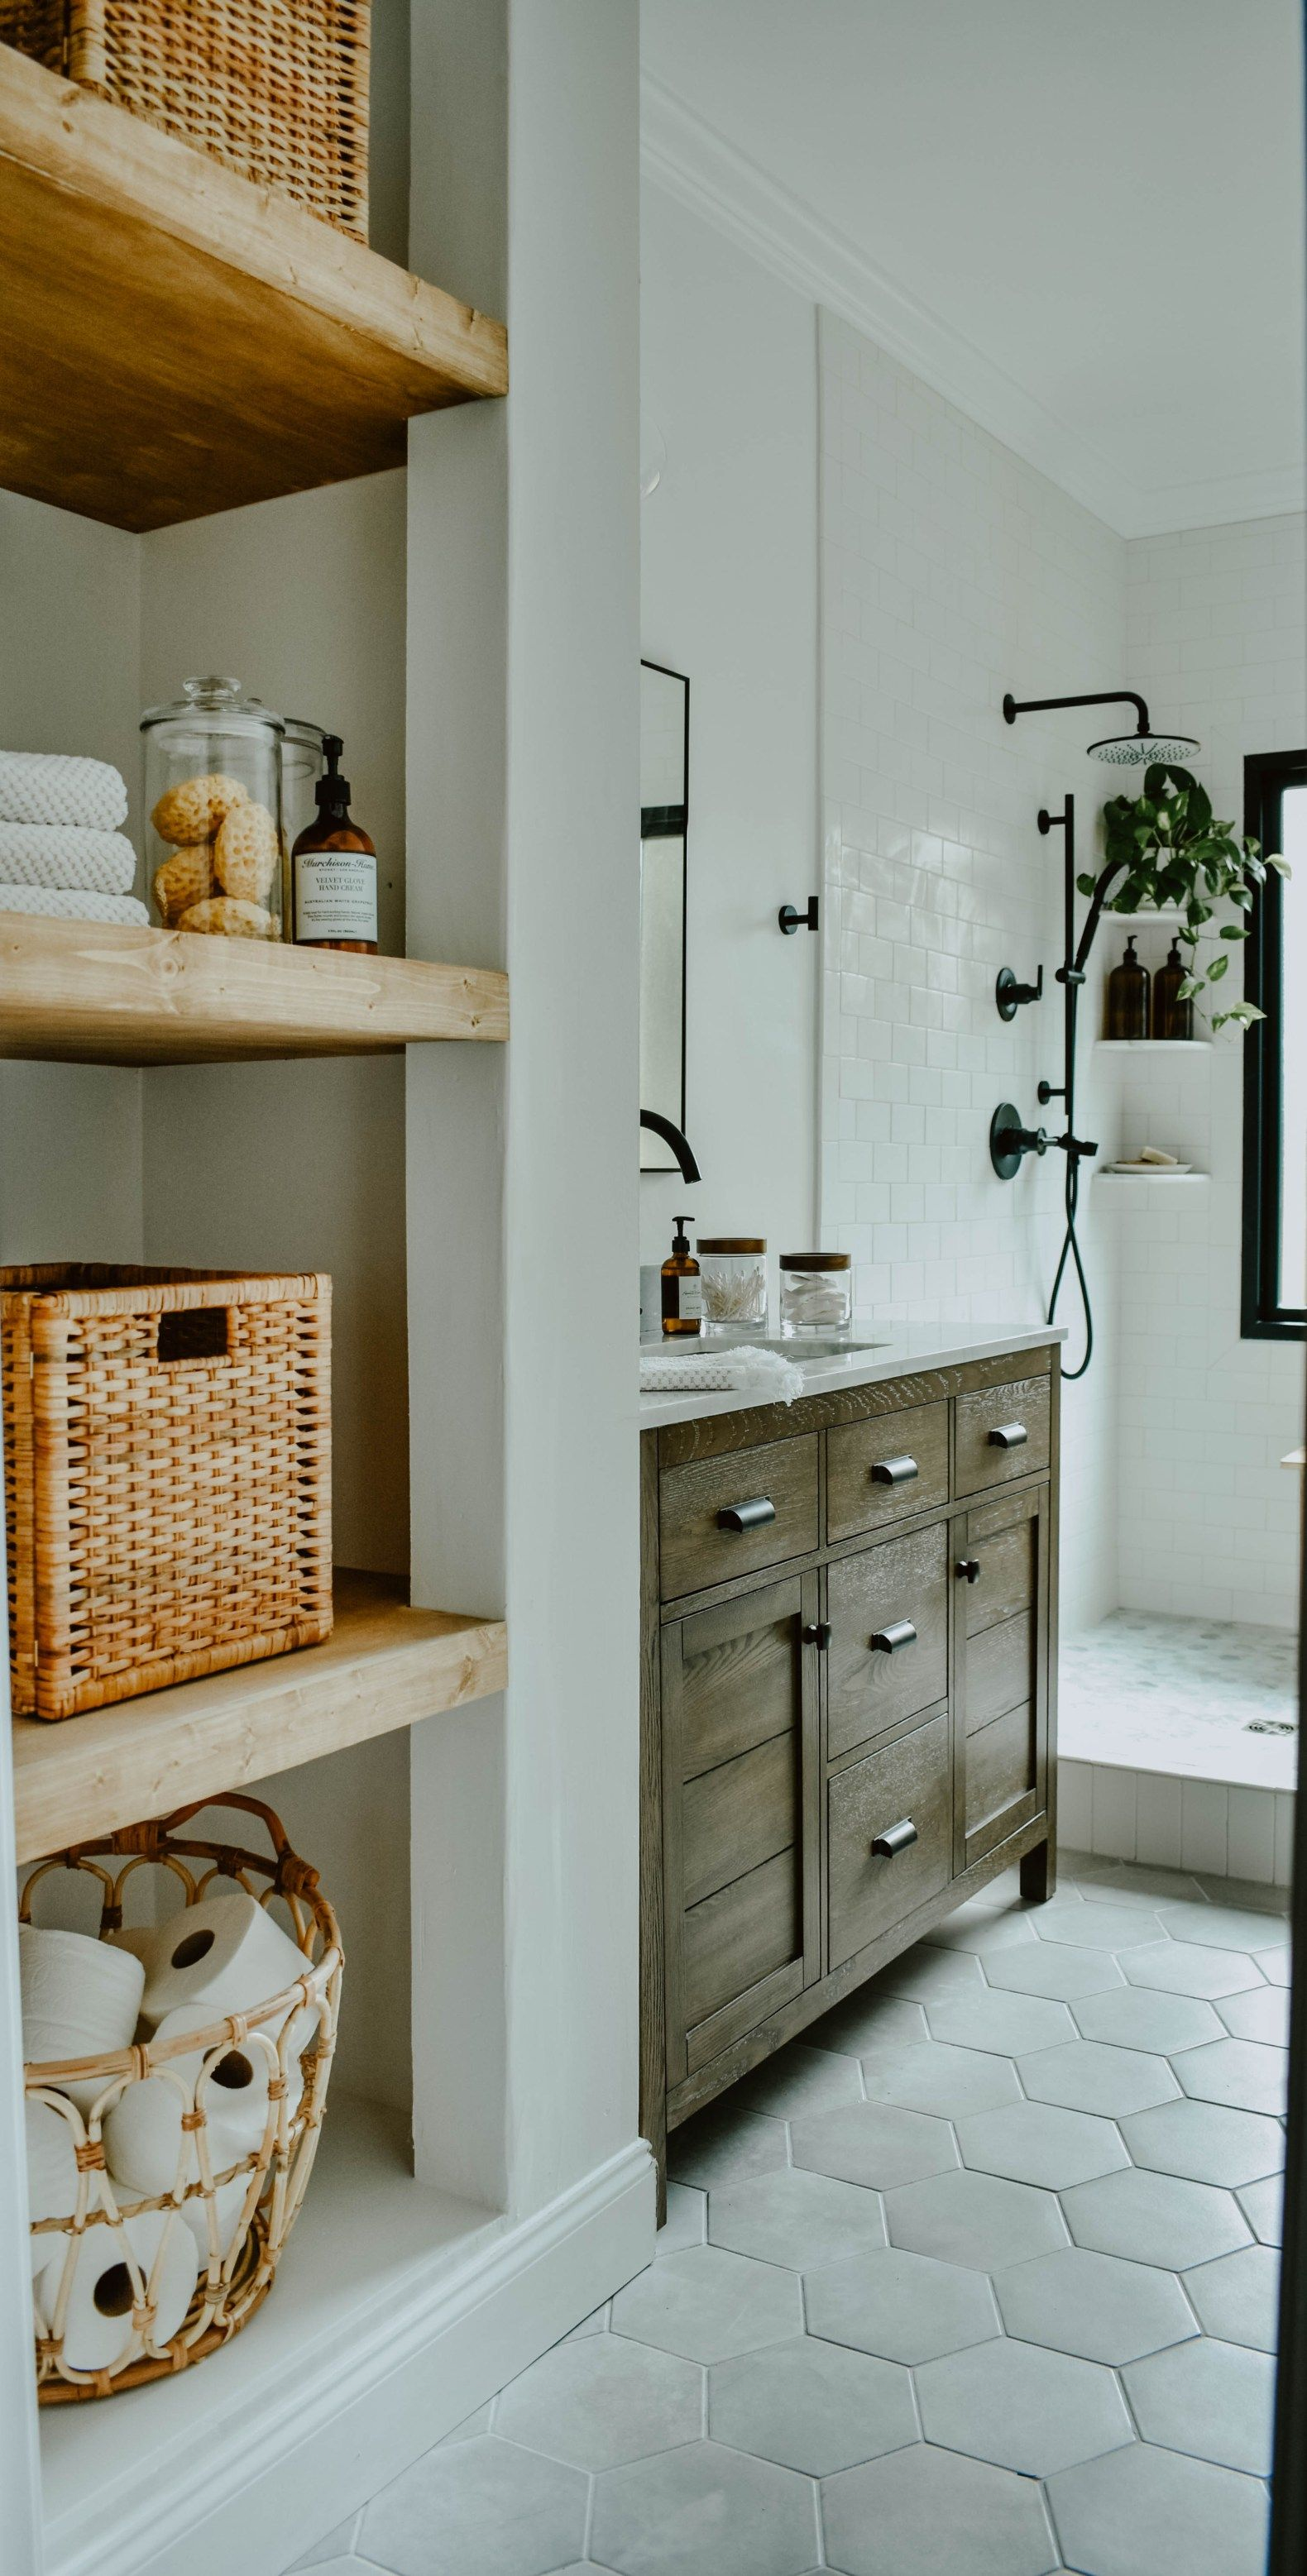 How to Transform a Linen Closet to Open Shelving | House On Longwood Lane